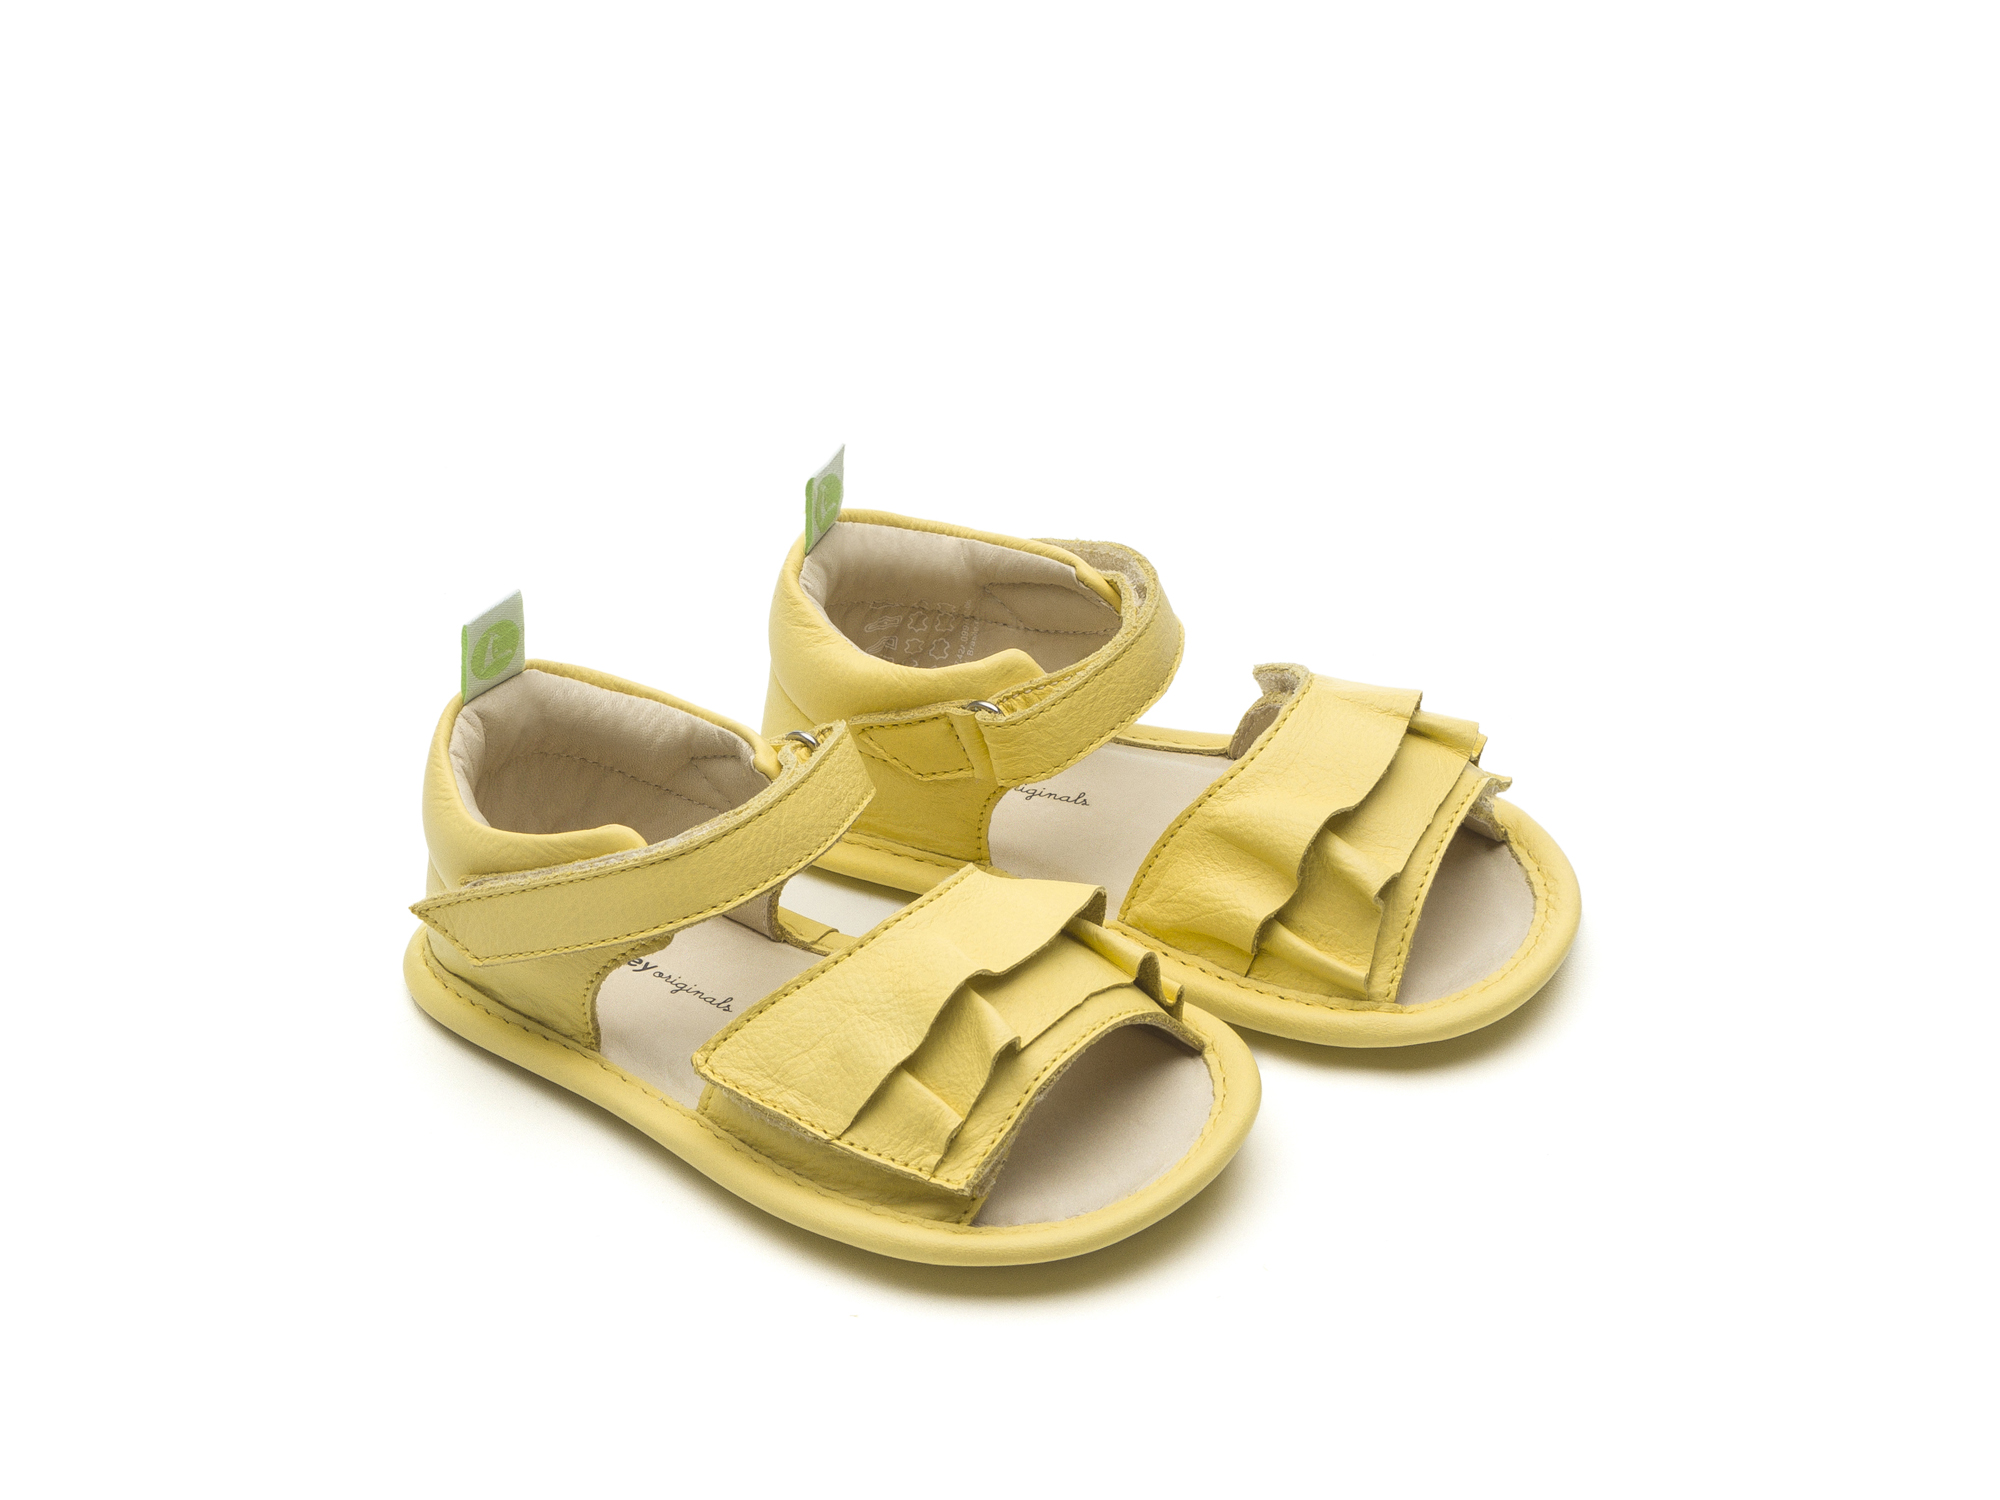 Sandal Windy Sun/ Sun Baby for ages 0 to 2 years - 0